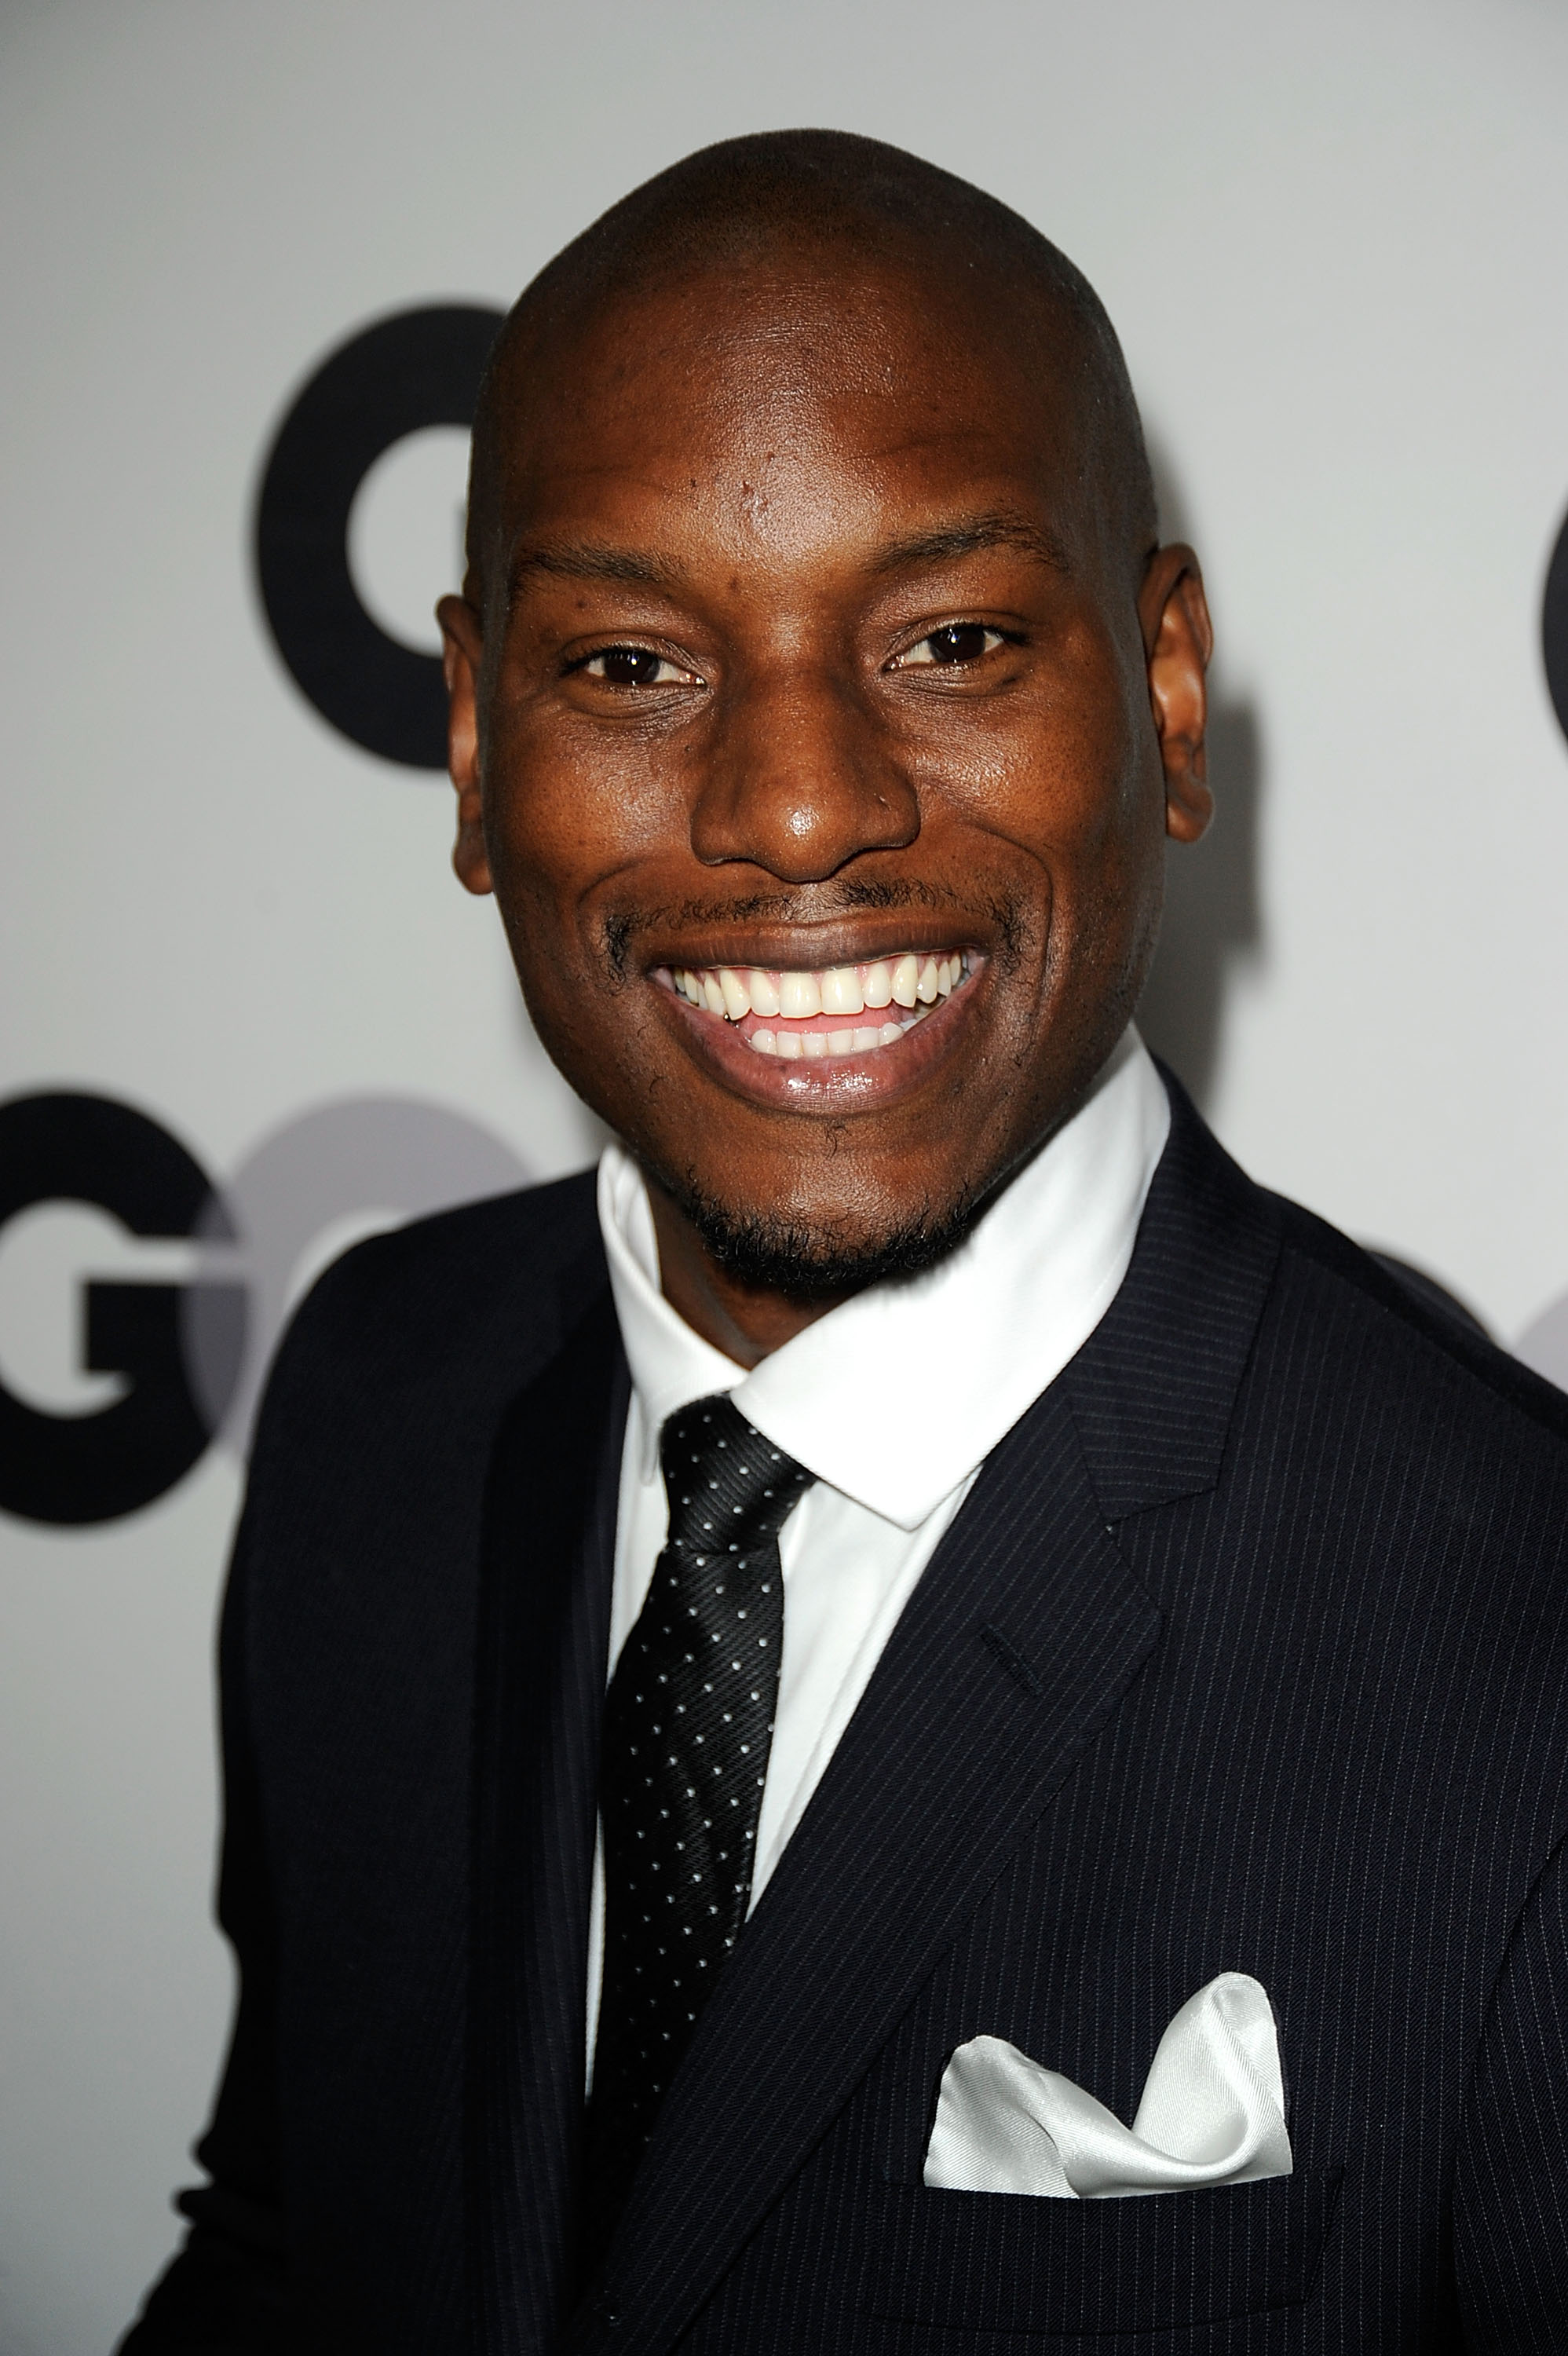 Tyrese Gibson gave his signature smile on the black carpet. - Tyrese-Gibson-gave-his-signature-smile-black-carpet